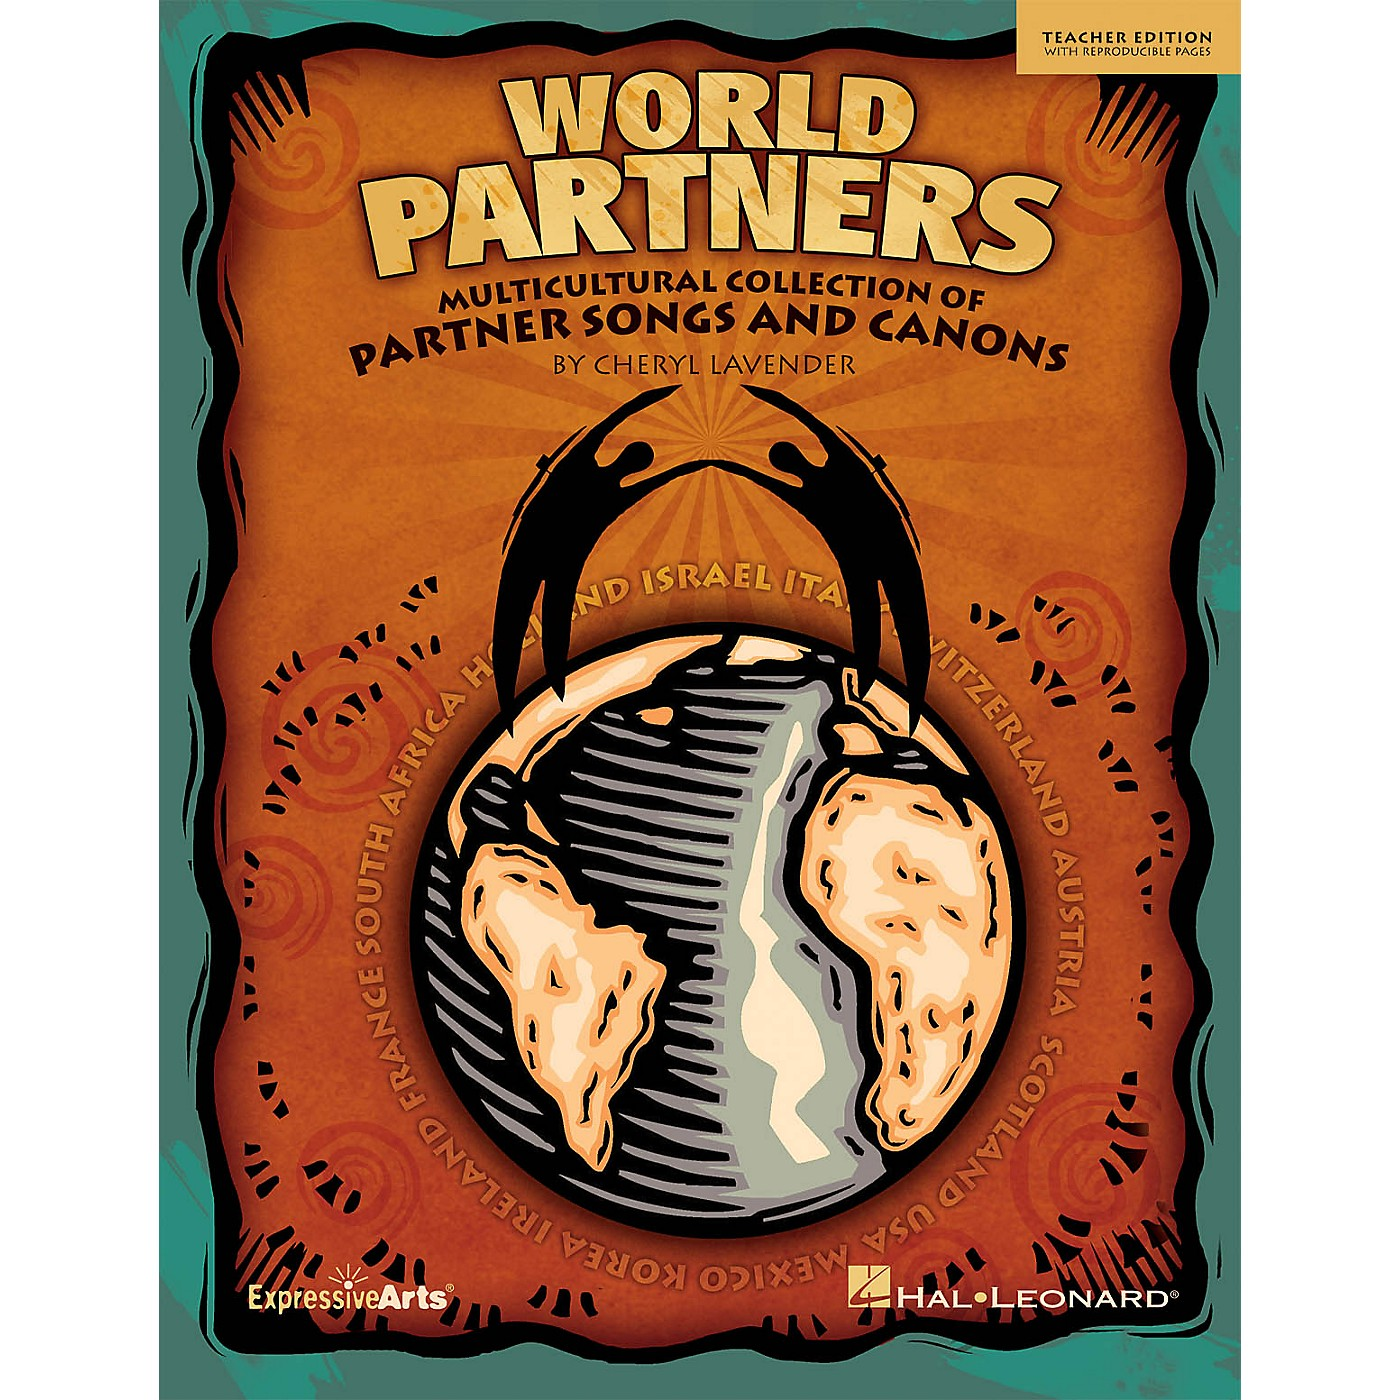 Hal Leonard World Partners (Multicultural Collection of Partner Songs and Canons) TEACHER ED by Cheryl Lavender thumbnail